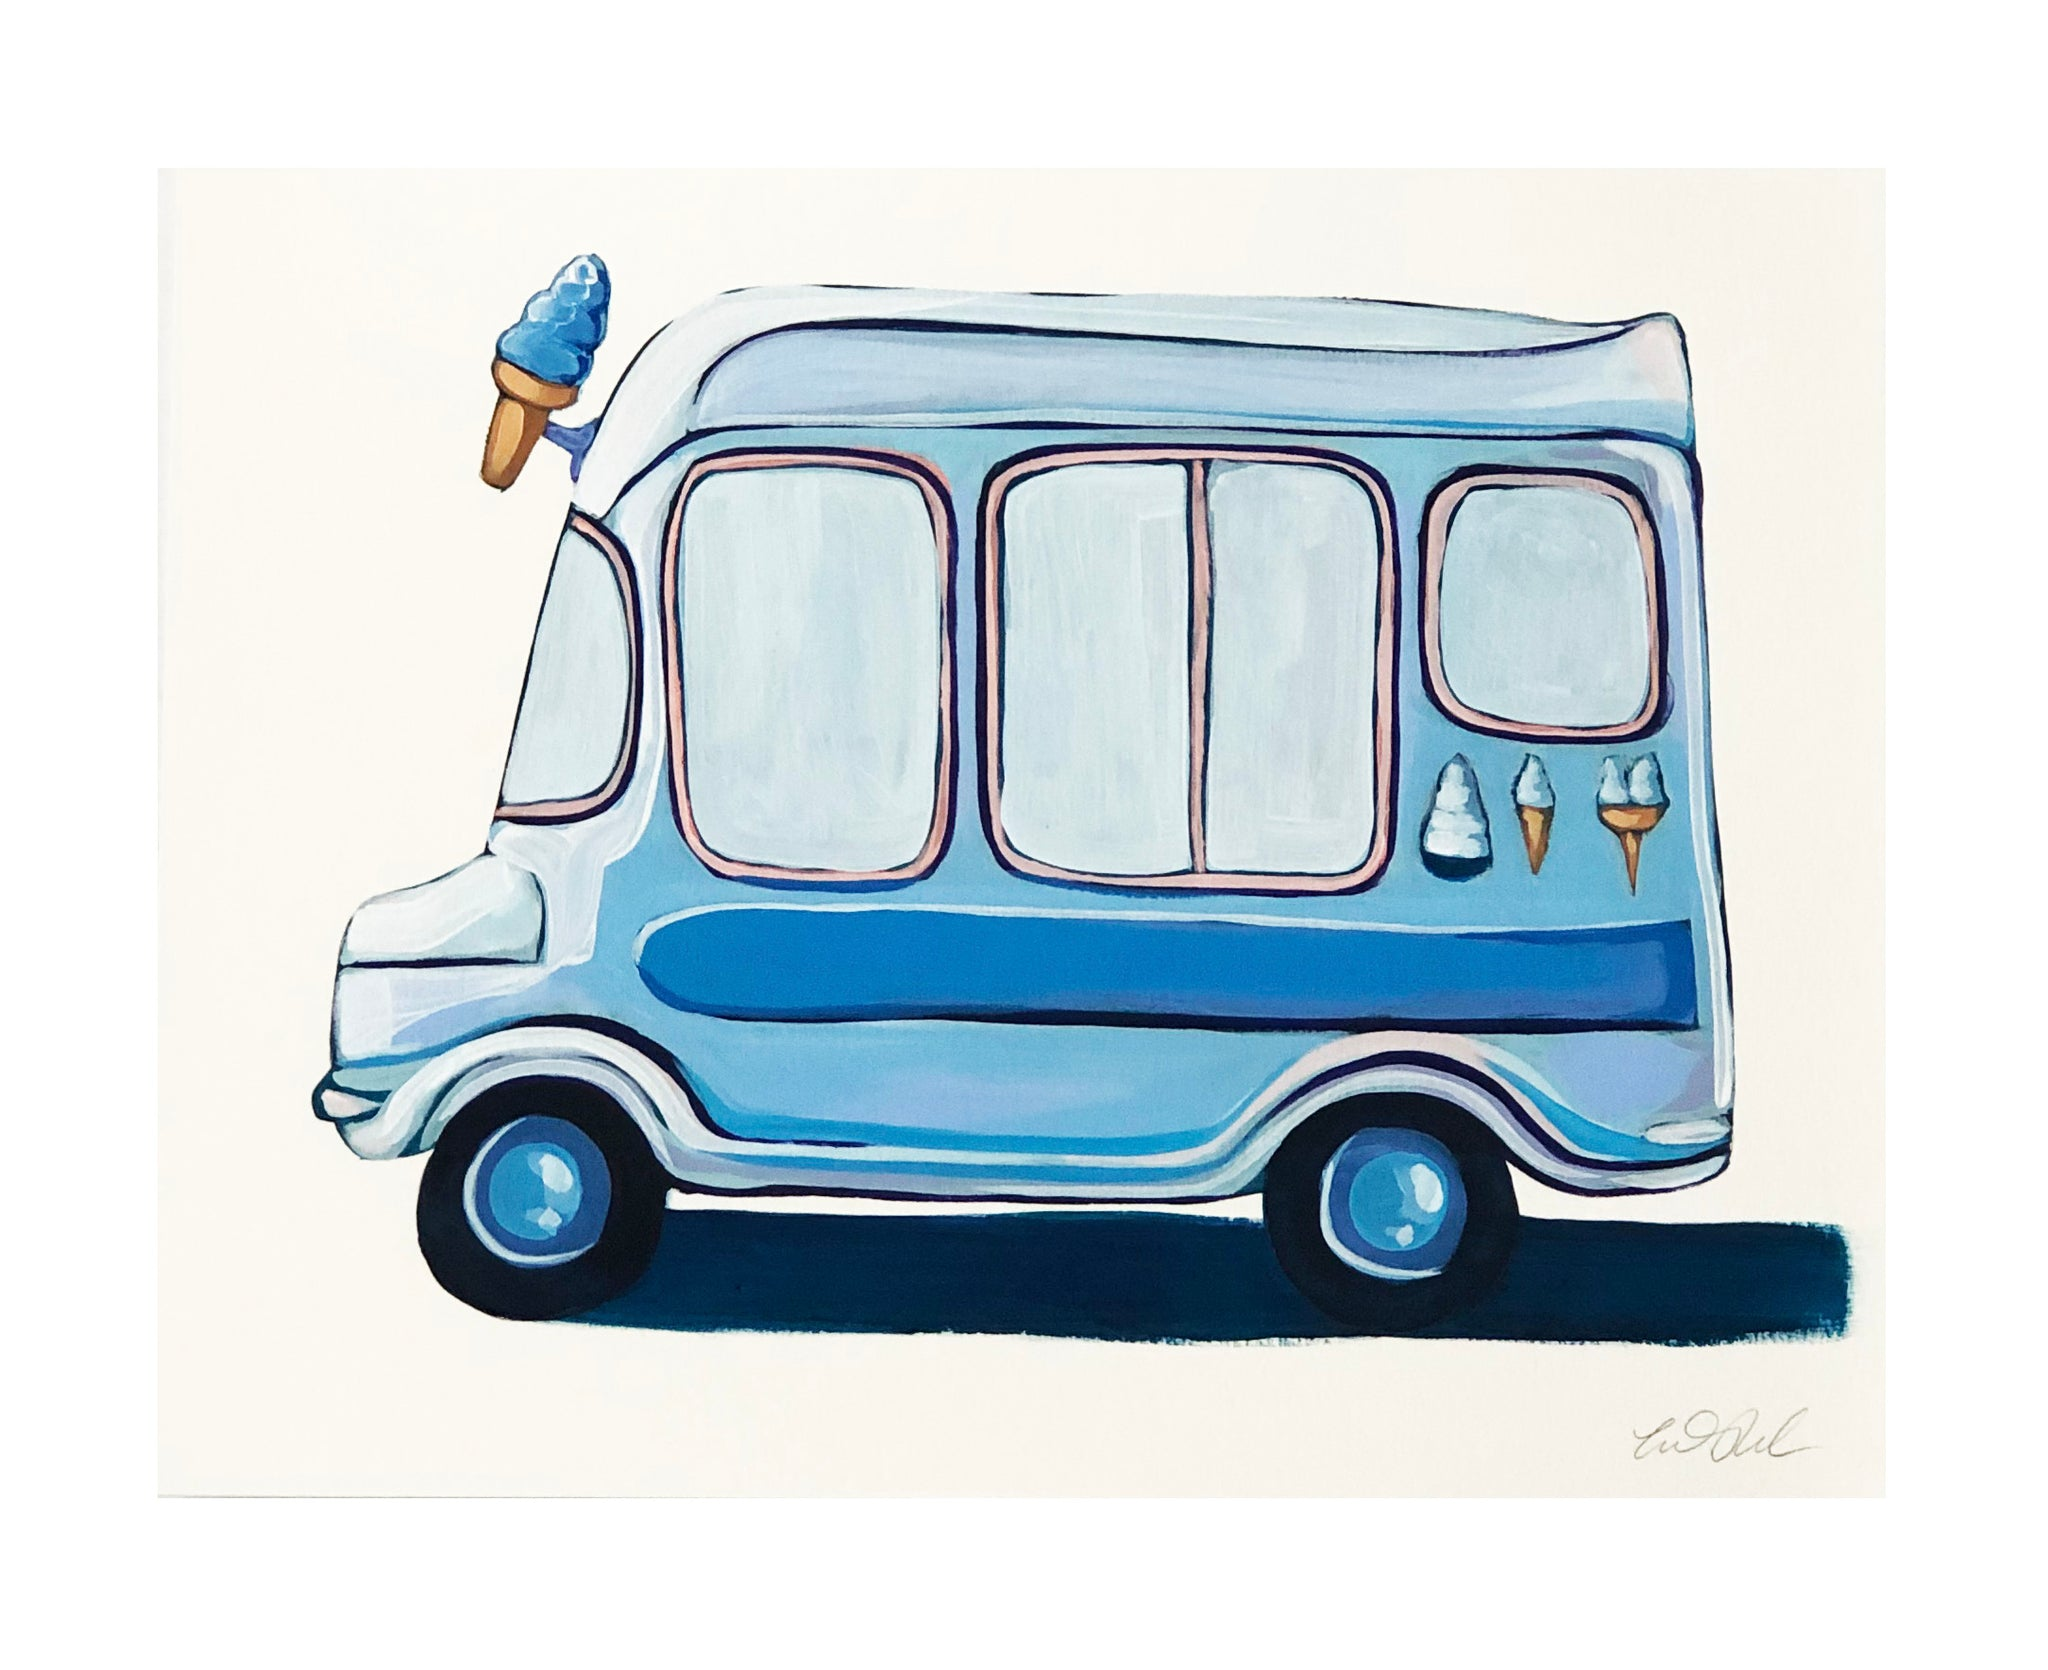 Blue Ice Cream Truck 1